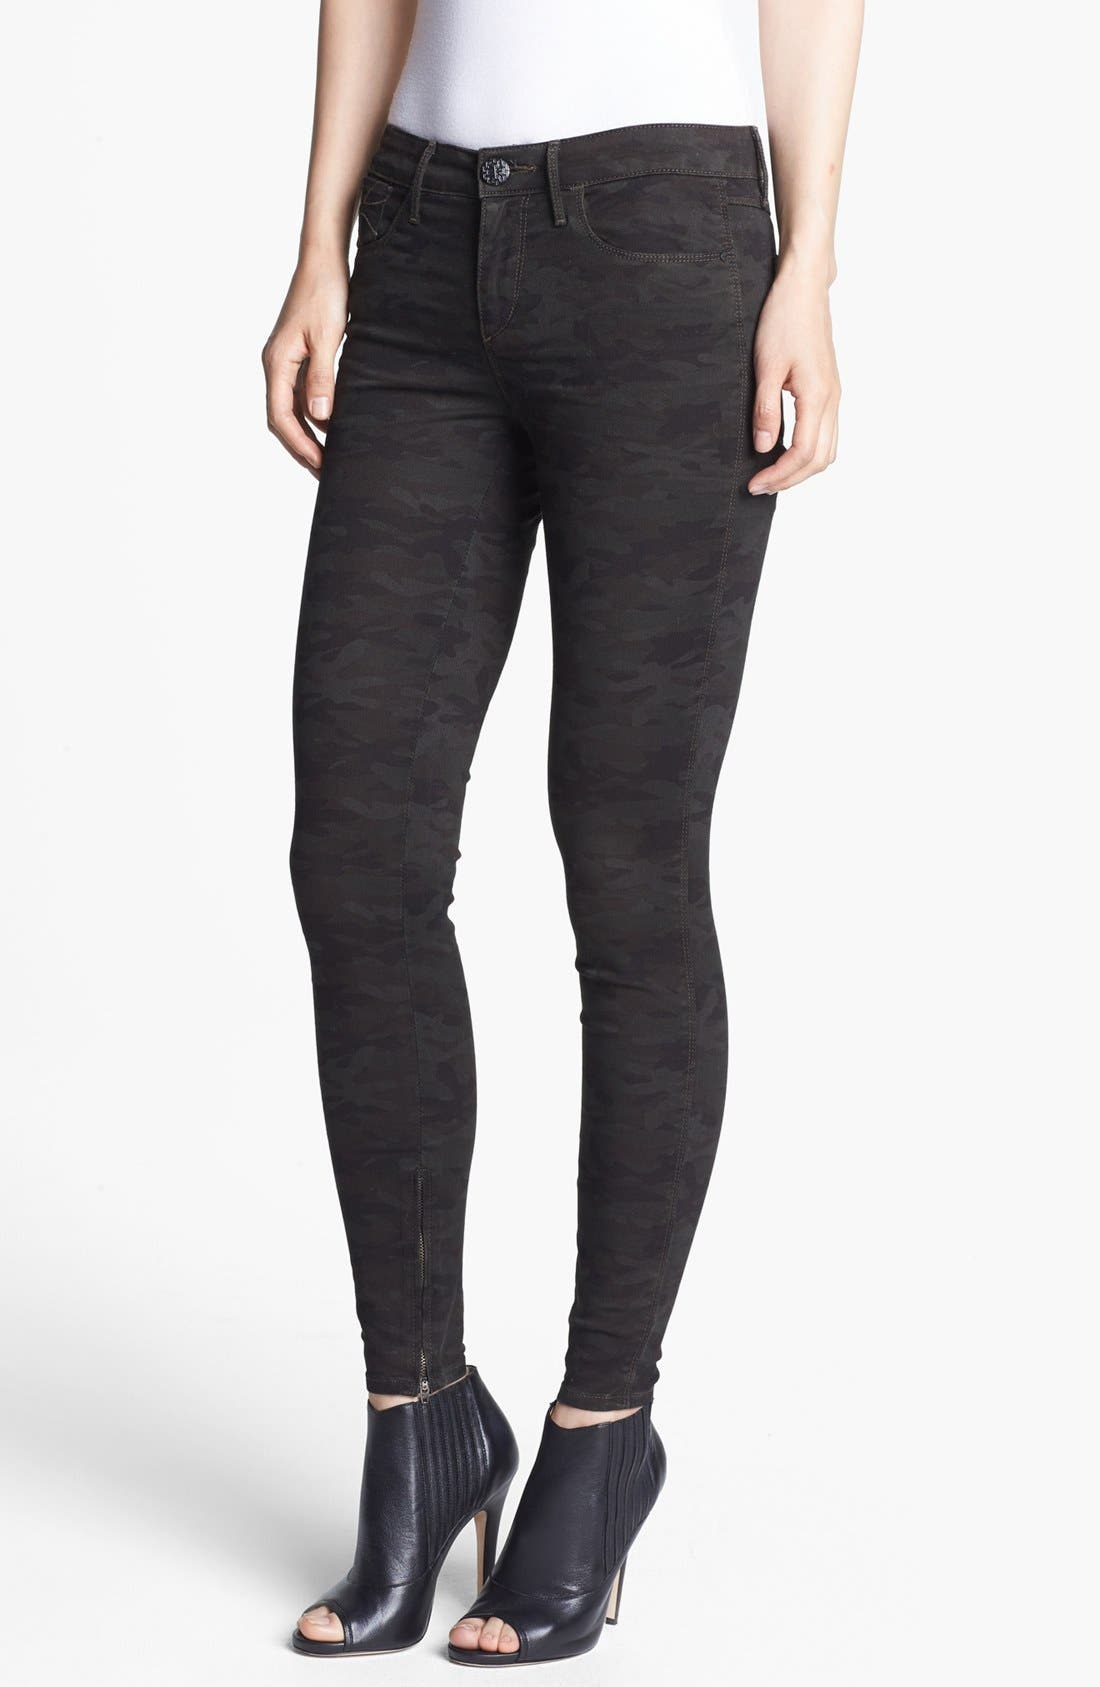 Alternate Image 1 Selected - Habitual 'Almas' Camo Print Skinny Stretch Jeans (Nordstrom Exclusive)